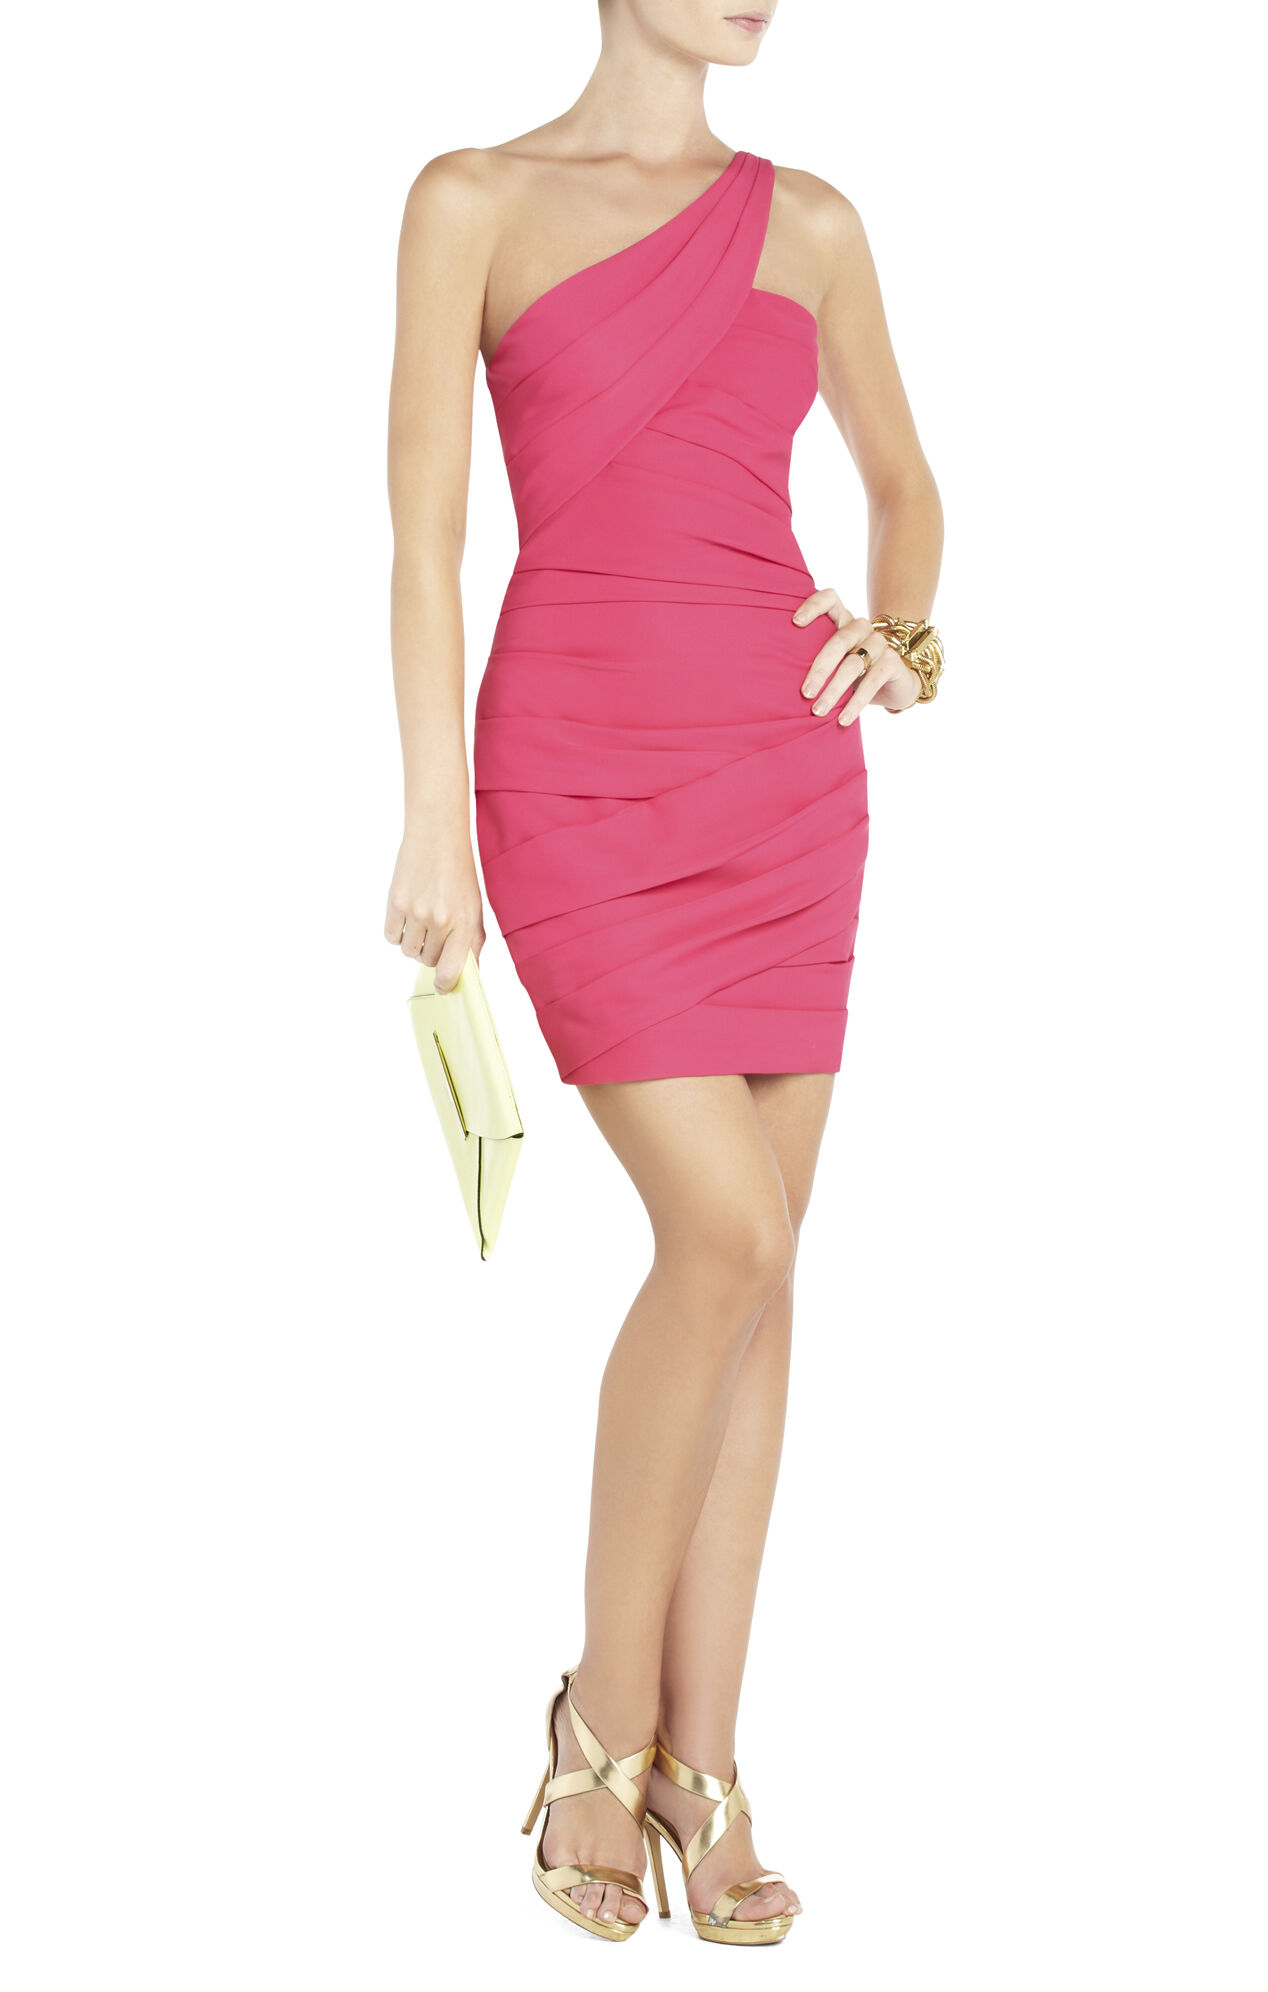 Versa One-Shoulder Cocktail Dress